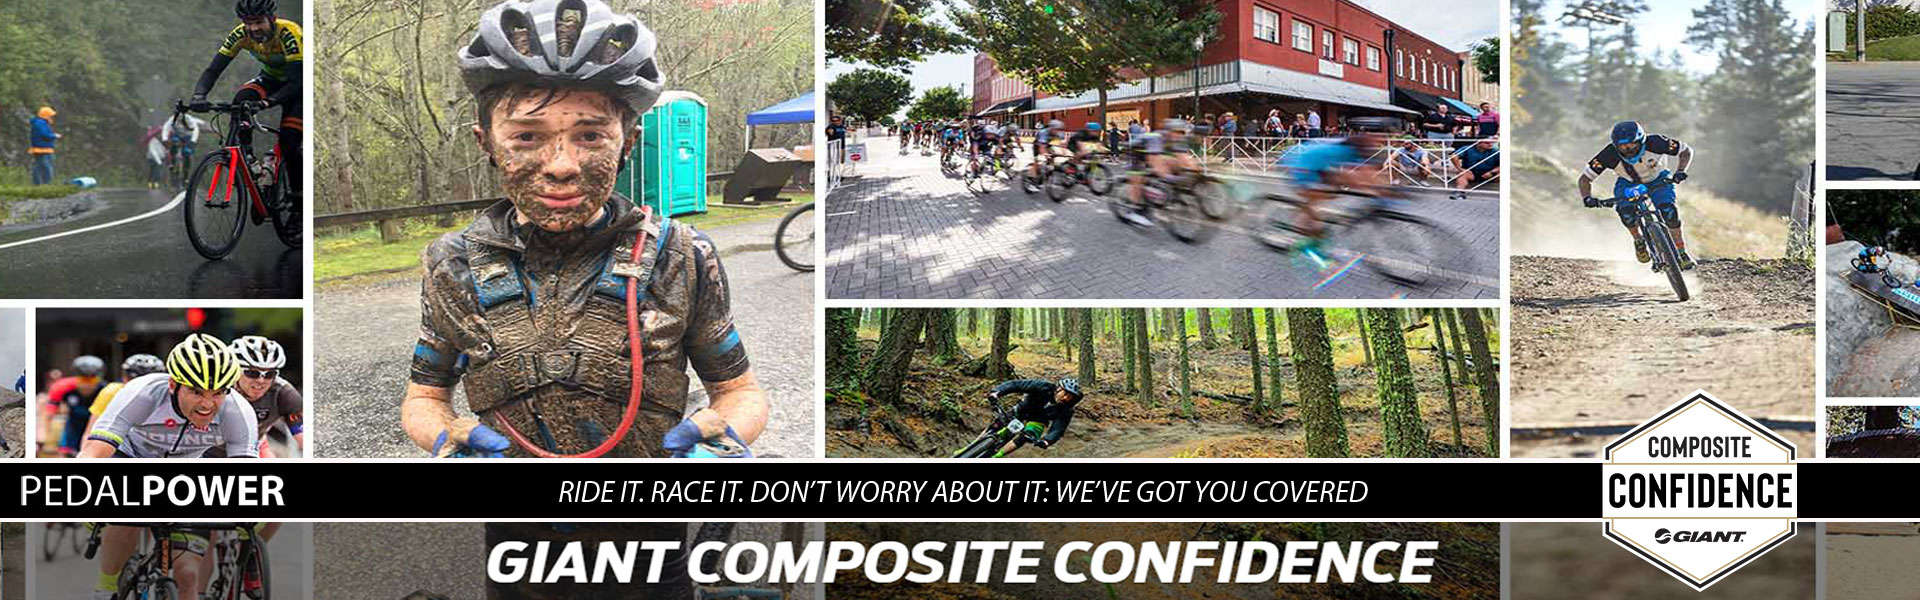 PedalPower Giant Composite Confidence